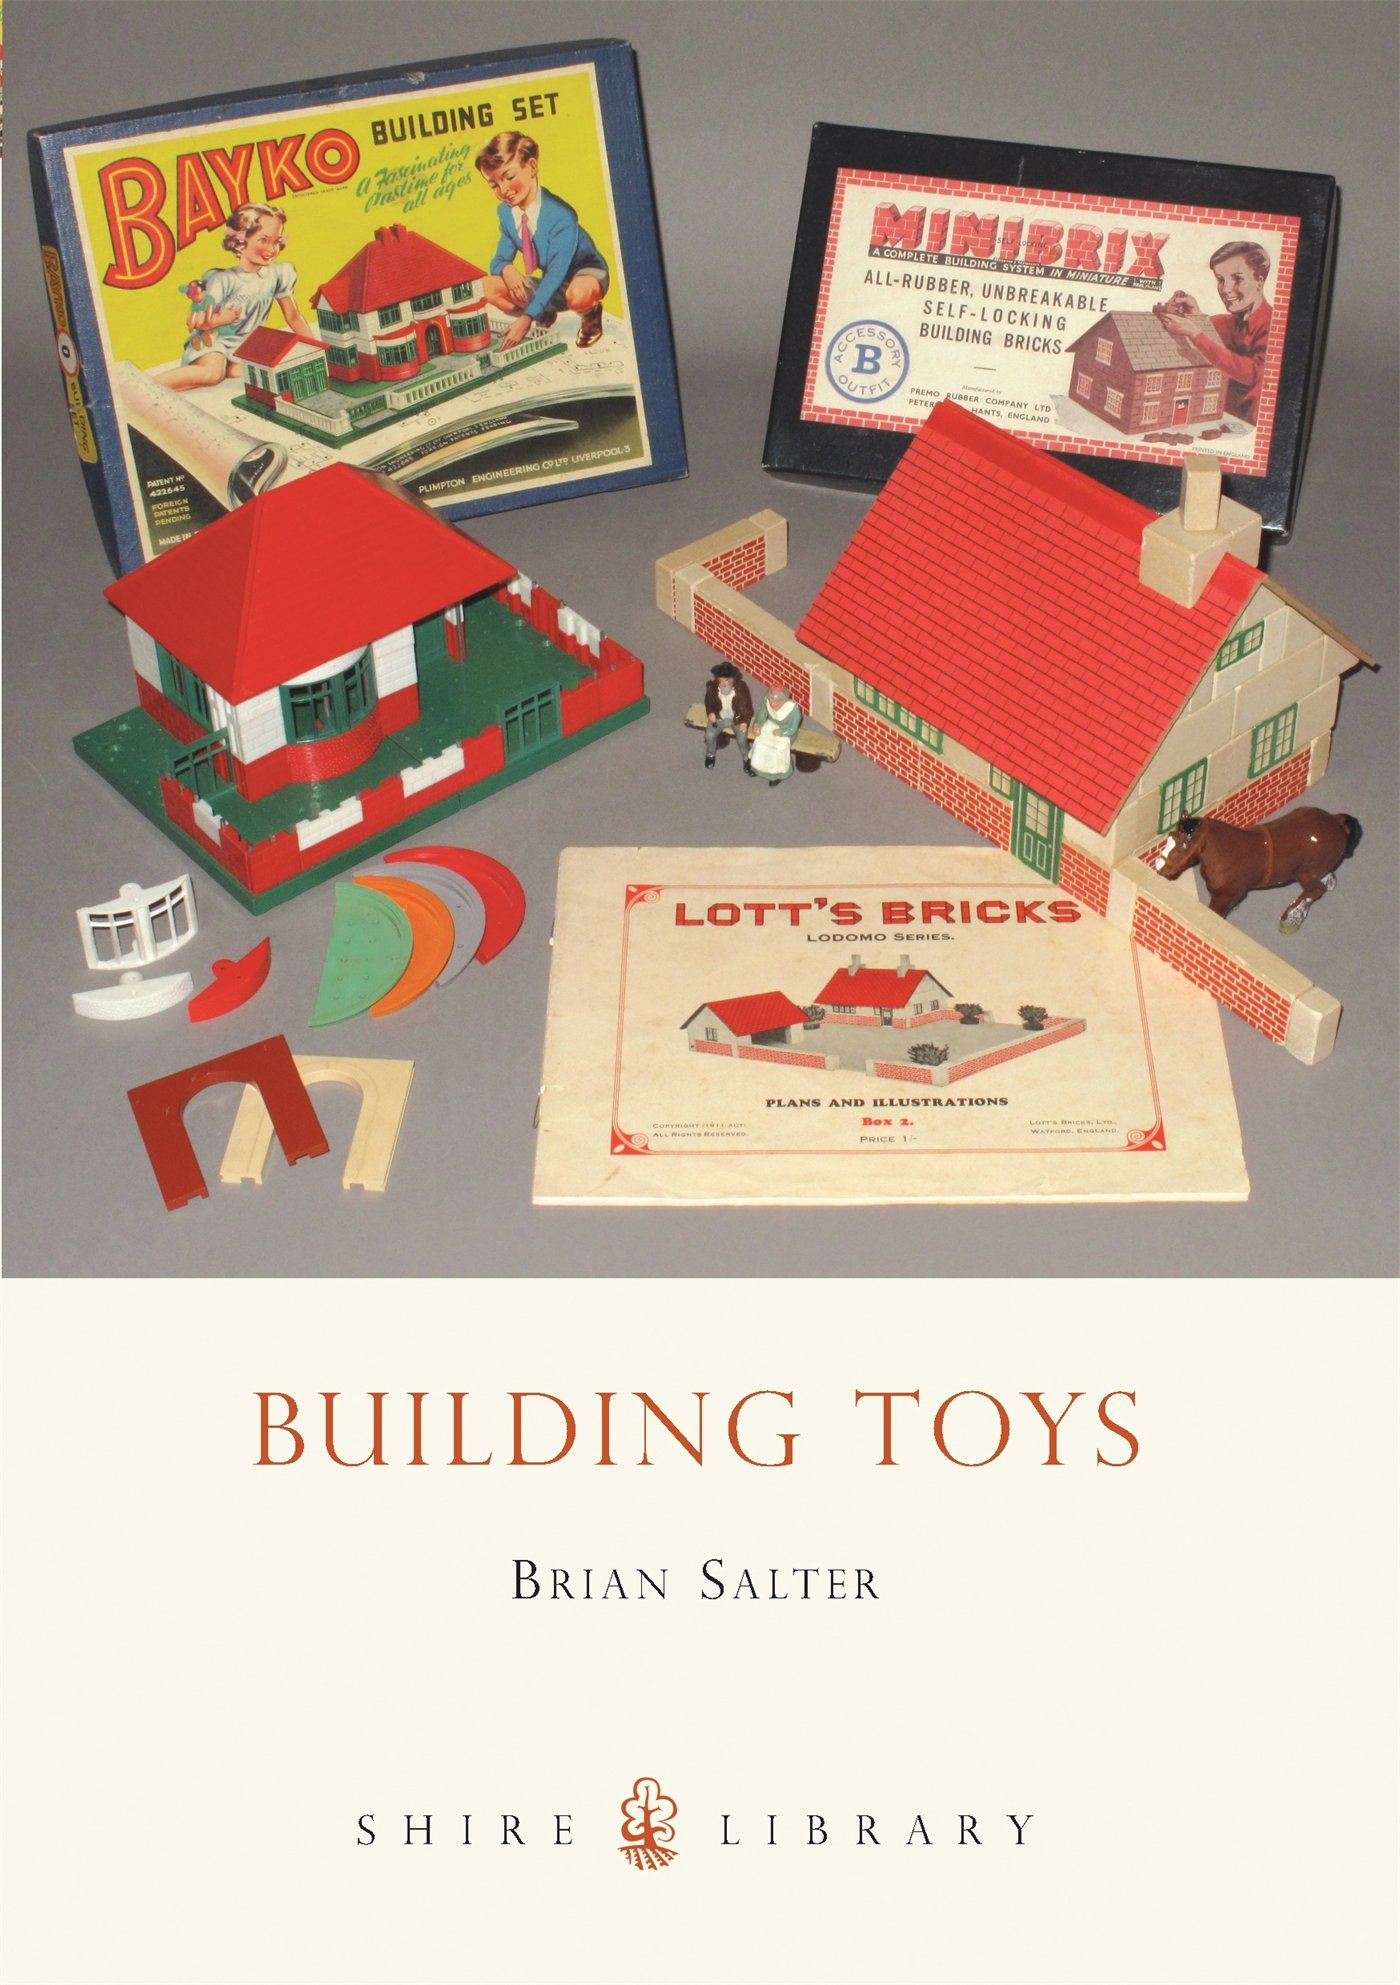 Building Toys: Bayko And Other Systems (shire Library): Amazon: Brian  Salter: 9780747808152: Books